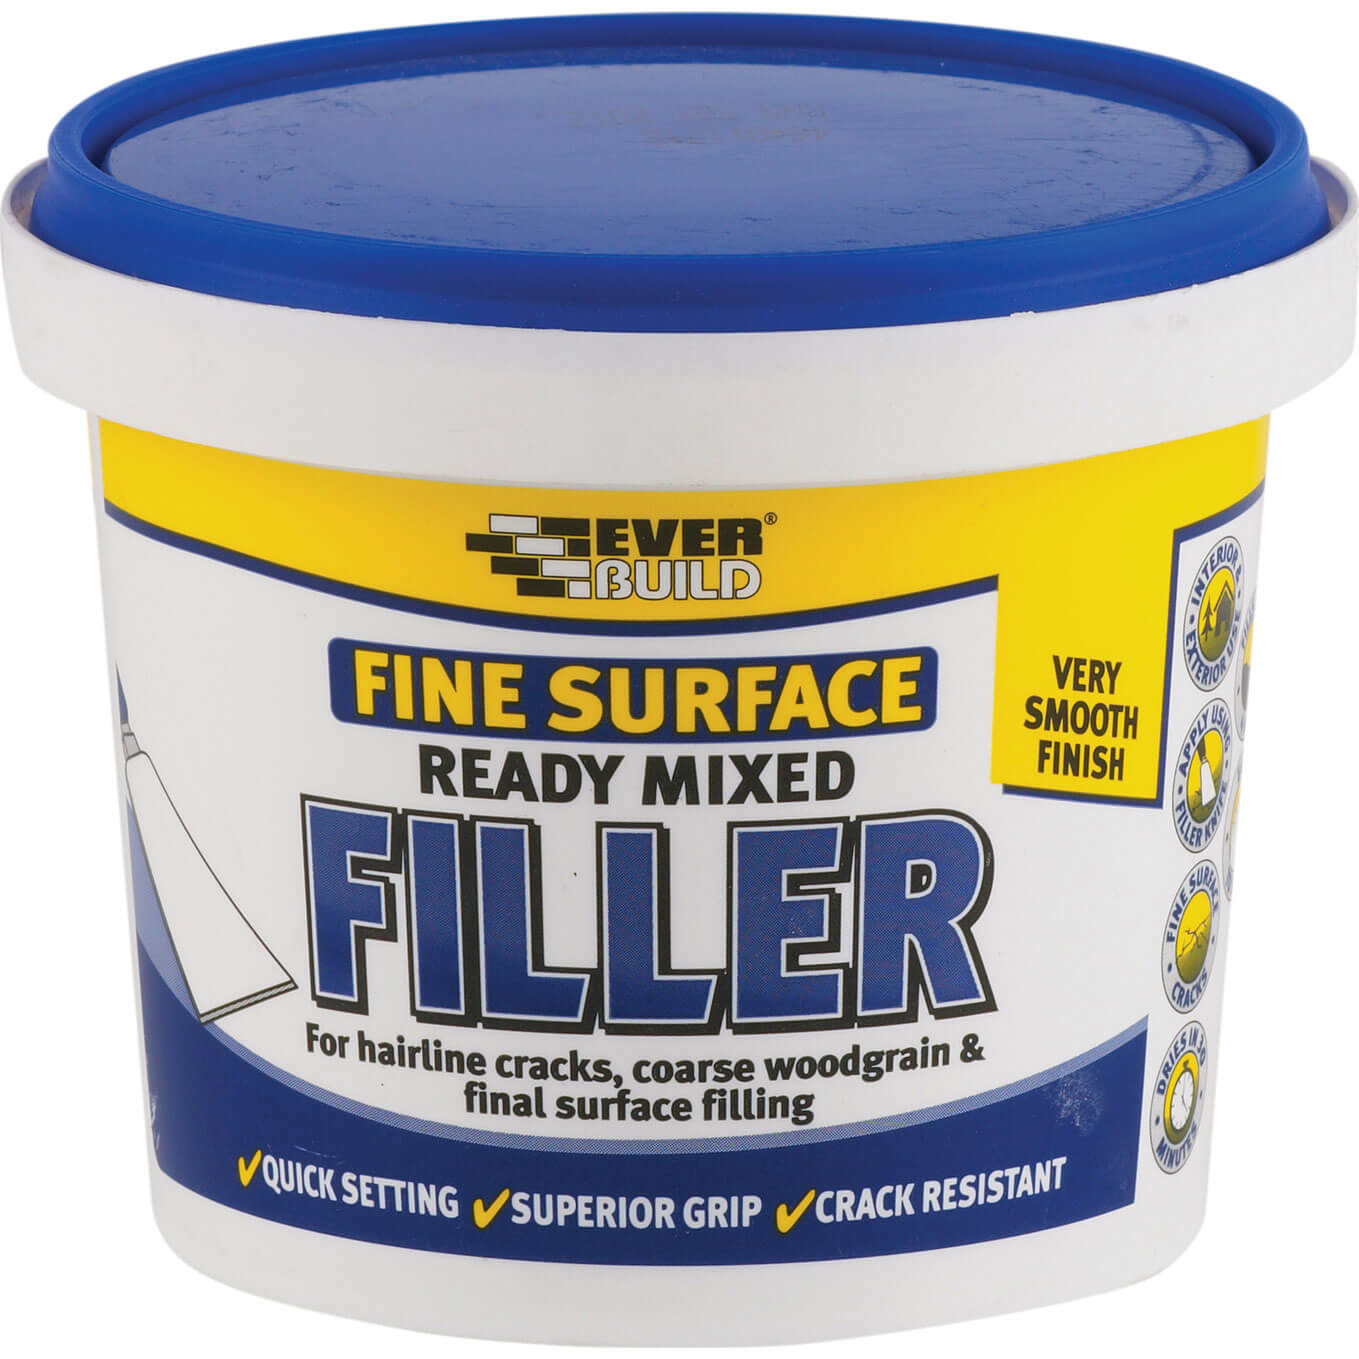 Tooled Up/Sealants & Adhesives/Fillers/Everbuild Fine Surface Filler Ready Mixed 600g